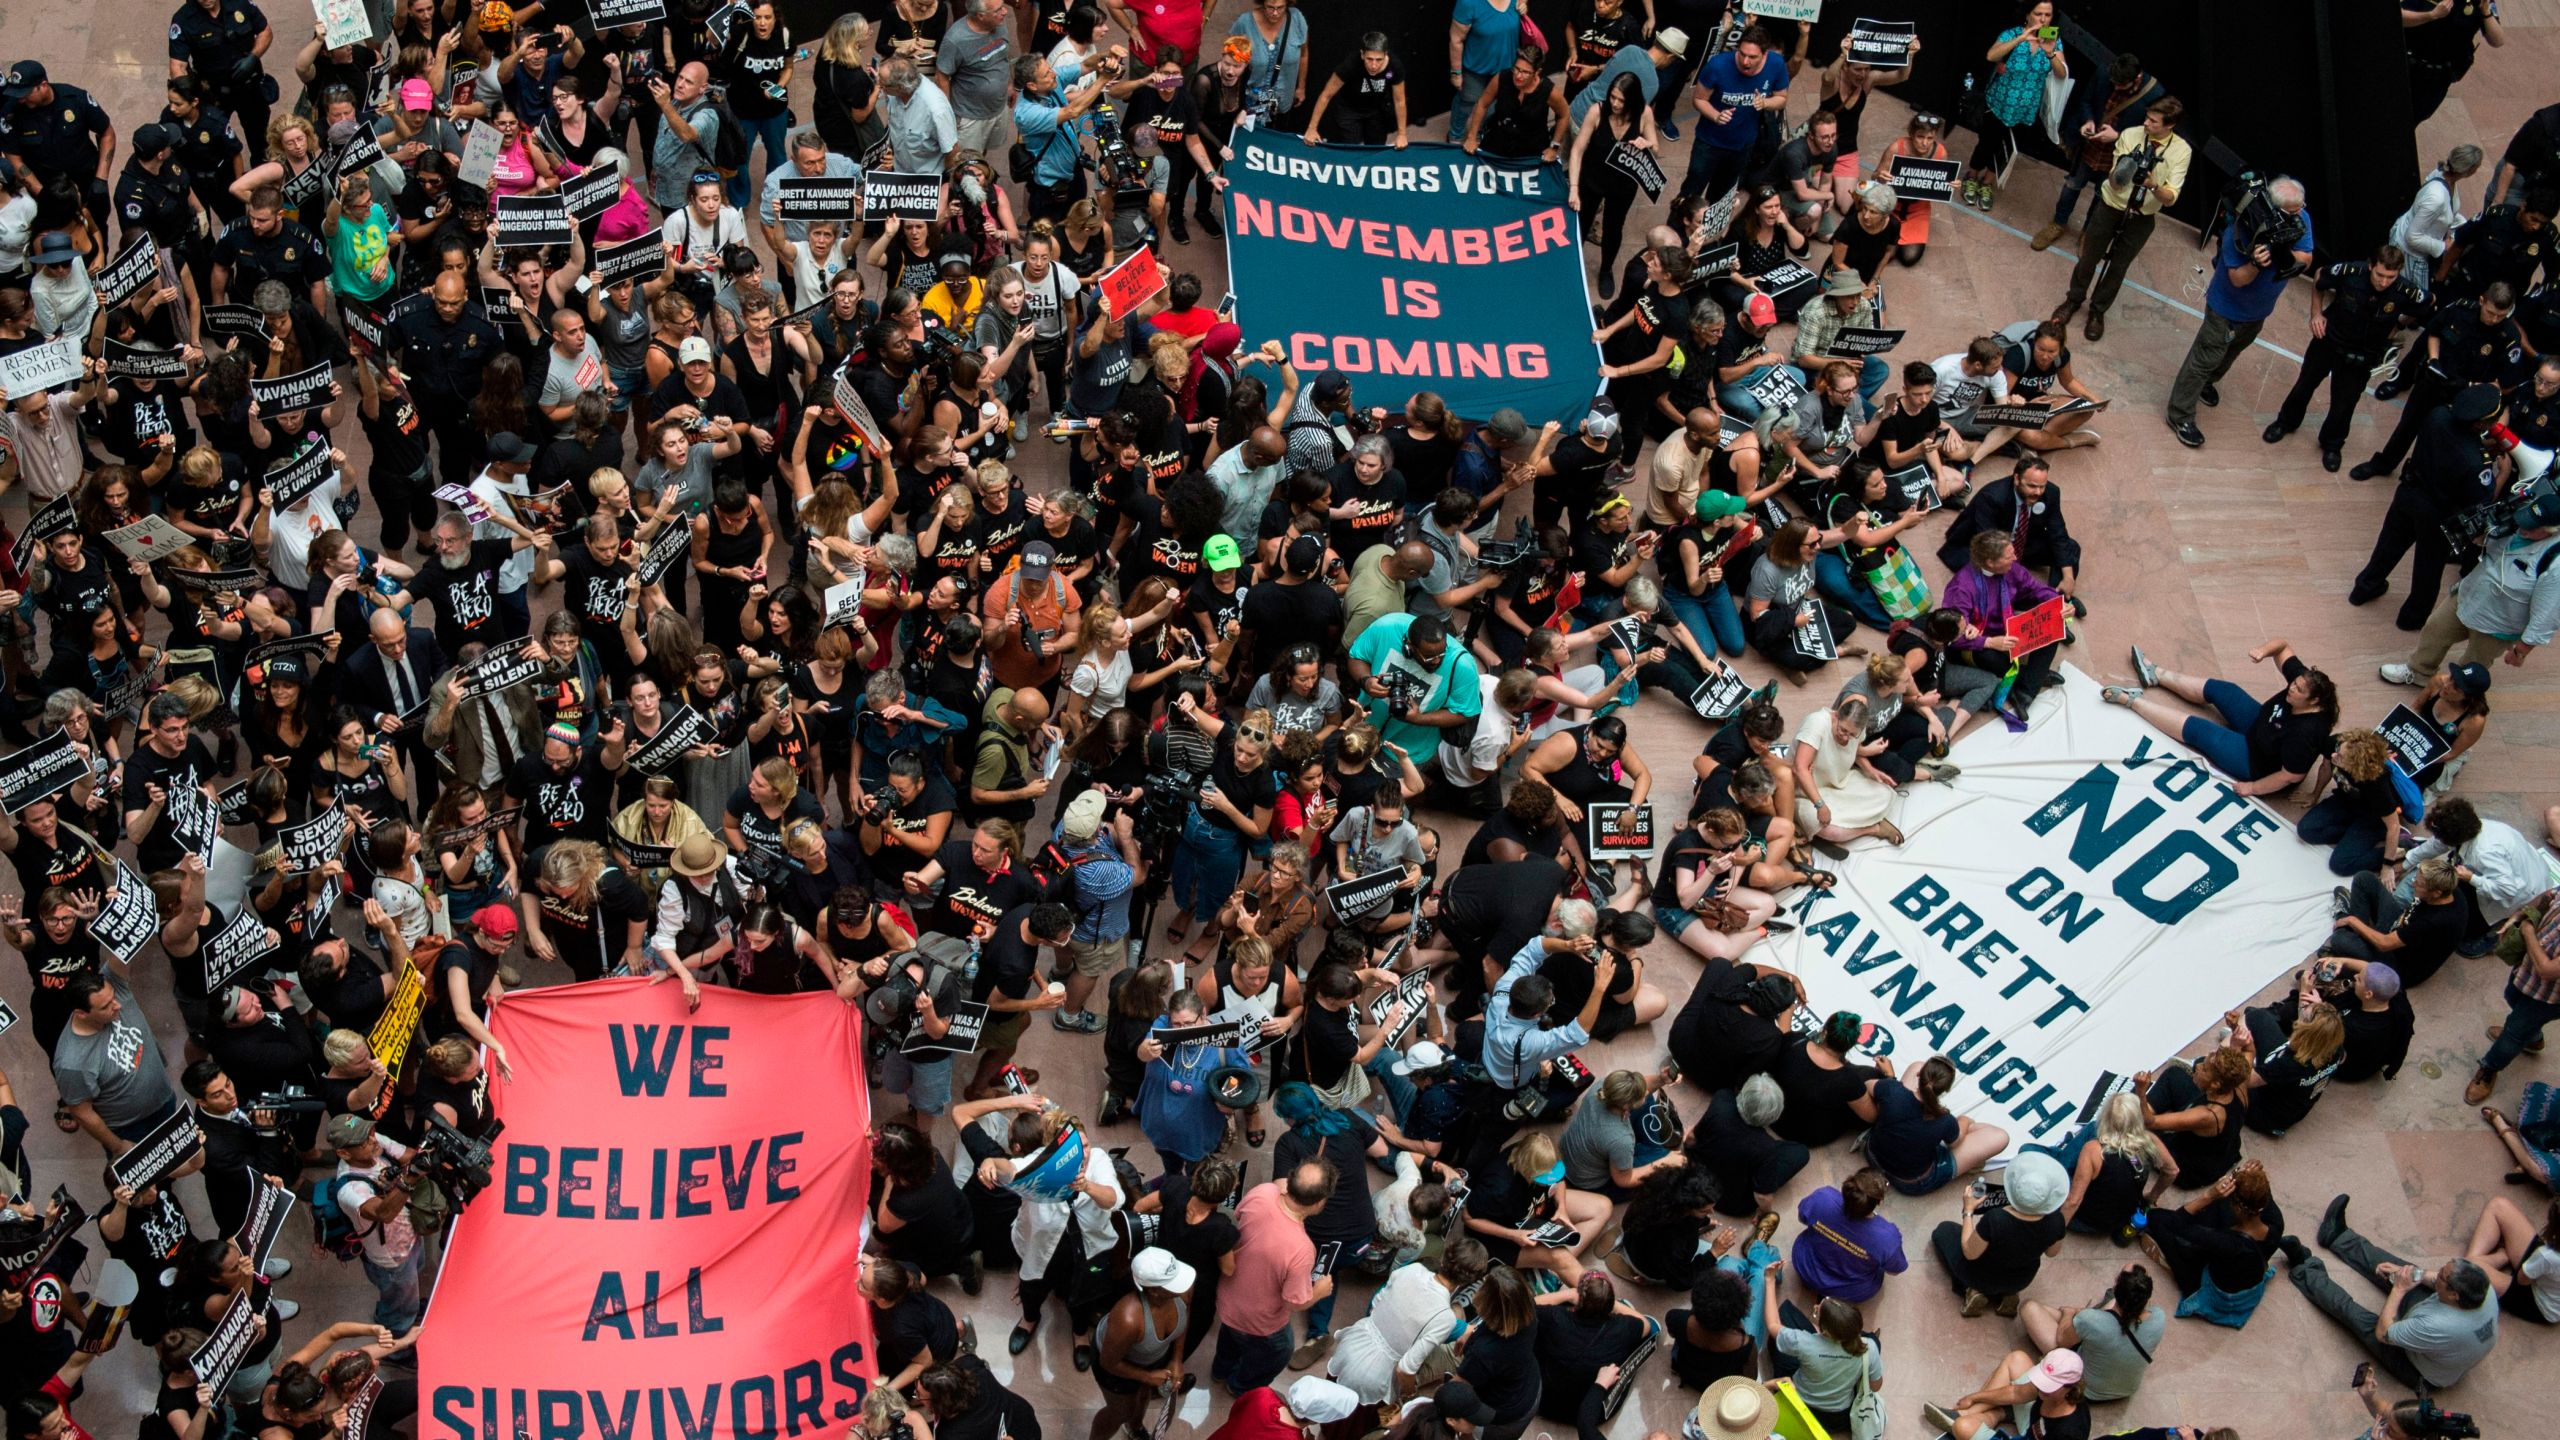 Protesters occupy the Senate Hart building during a rally against Supreme Court nominee Brett Kavanaugh on Capitol Hill, Oct. 4, 2018. (Credit: Andrew Caballero-Reynolds / AFP / Getty Images)